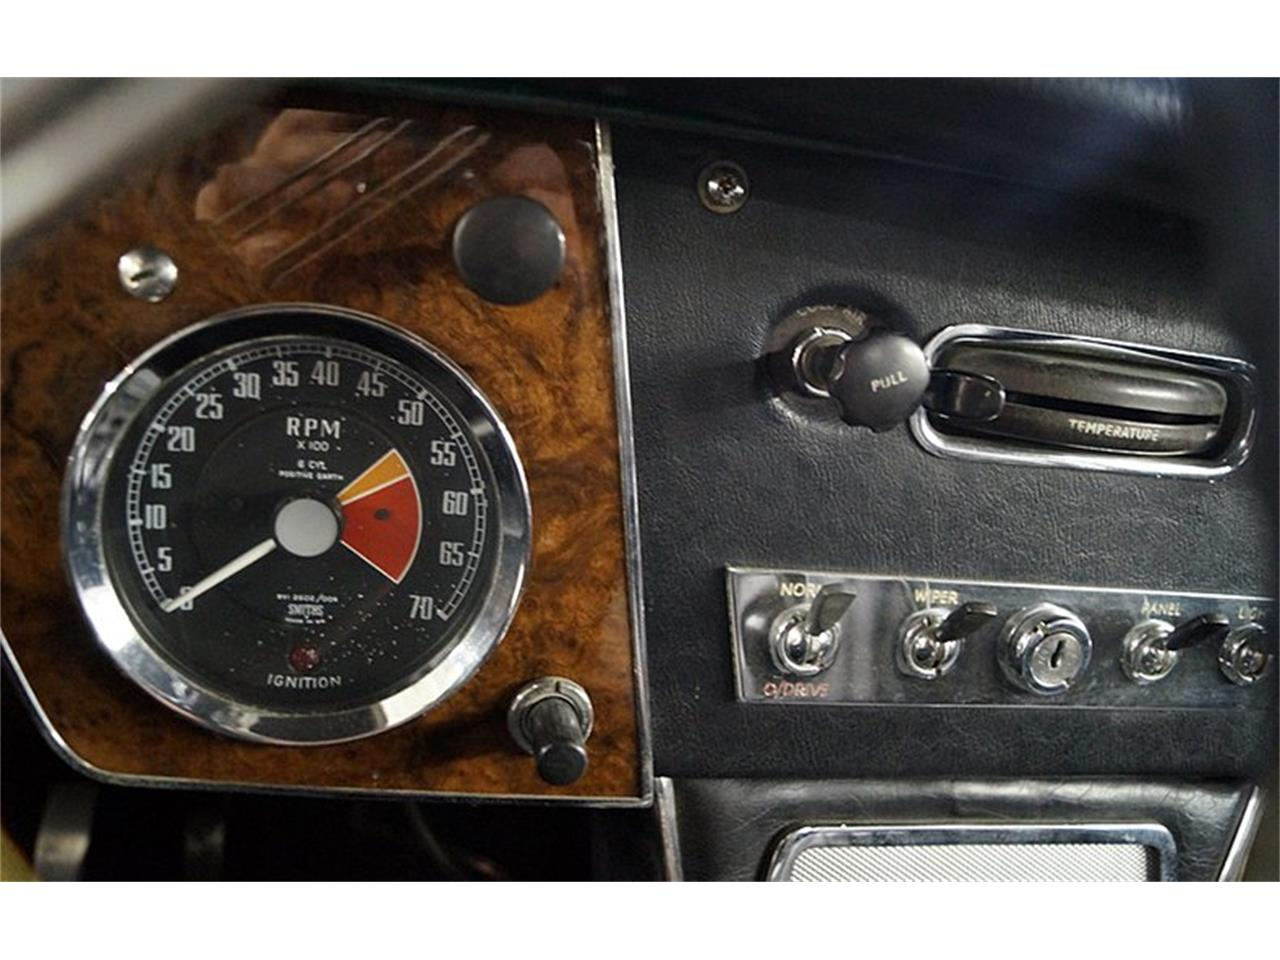 Large Picture of 1967 Austin-Healey 3000 Mark III BJ8 located in New York Auction Vehicle Offered by Saratoga Auto Auction - R16P